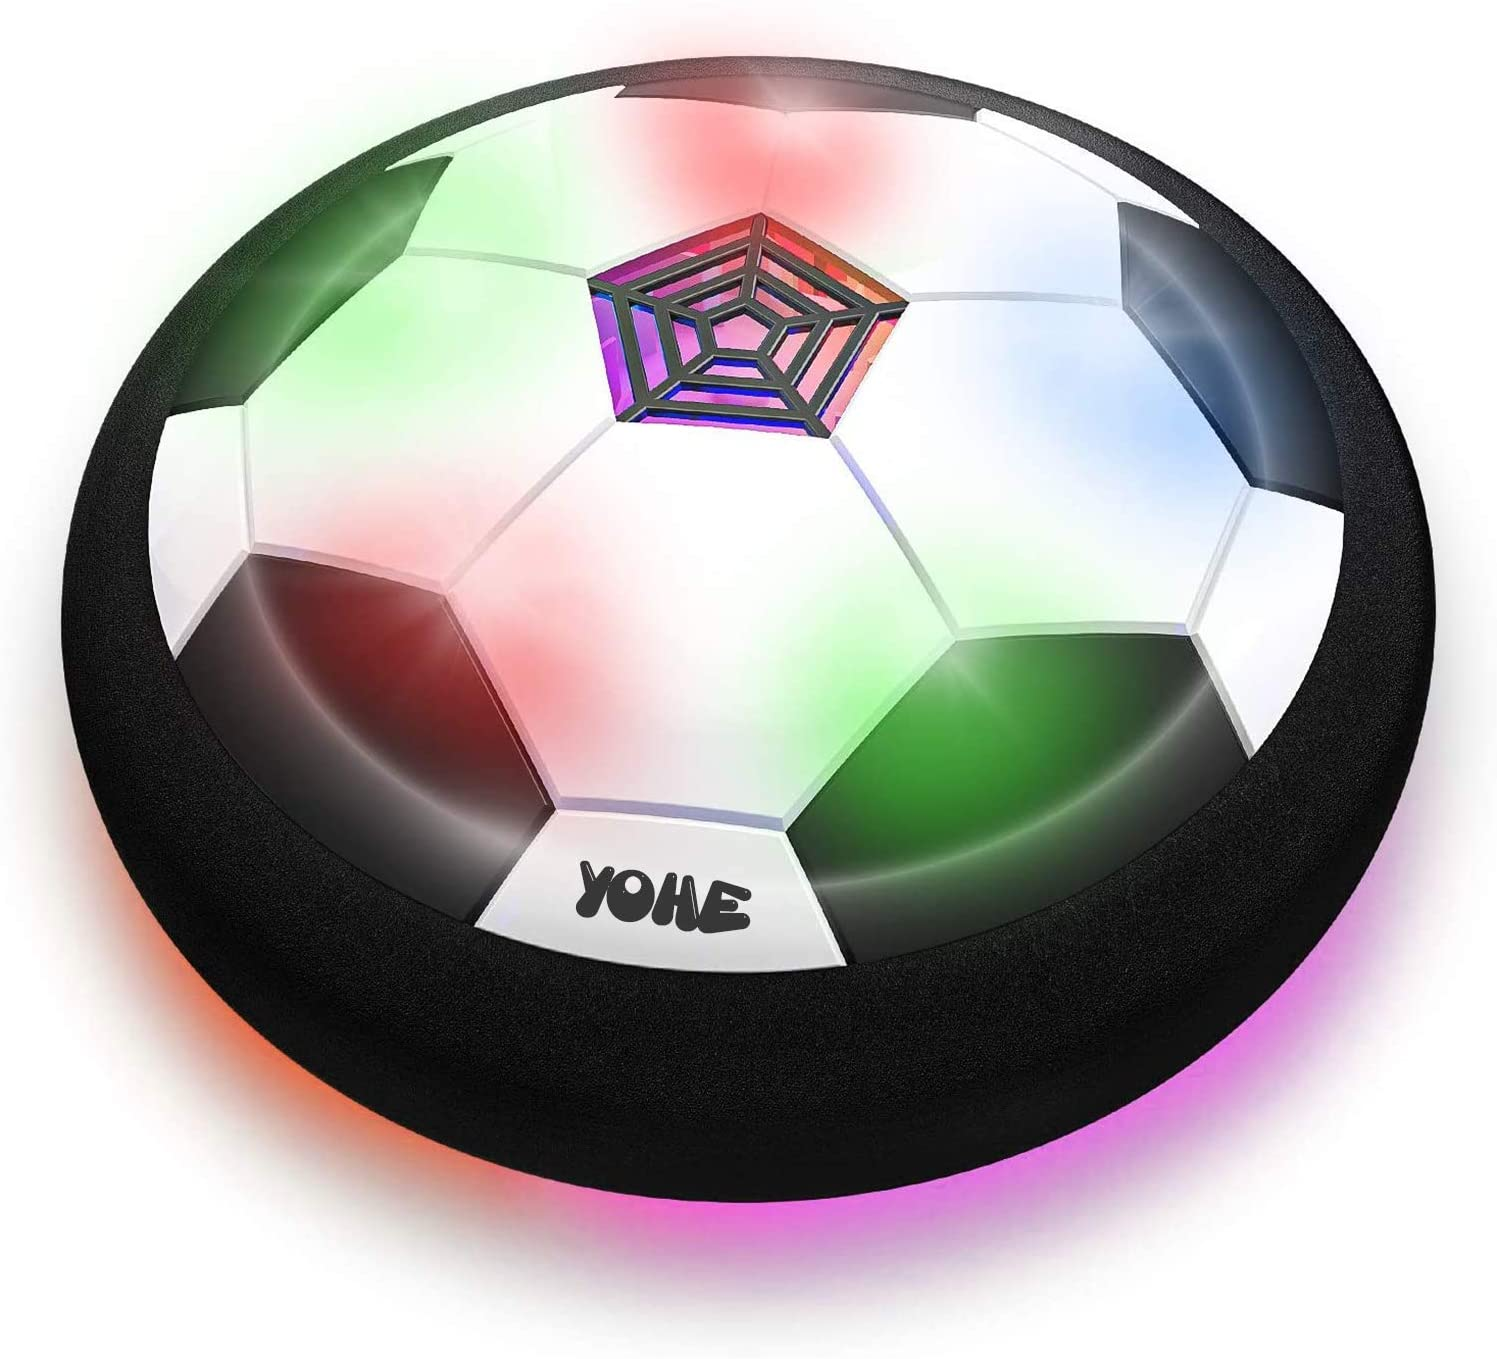 YOHE Gifts Boy Toys for 2-12 Year Old Boys ,Hover Ball for Kids, Indoor and Outdoor Toys Age 2 3 4 5 6 7 8 9,Educational Holiday Birthday Festival Gift for Toddlers Girls Kids Boys Age 2+ (Single)